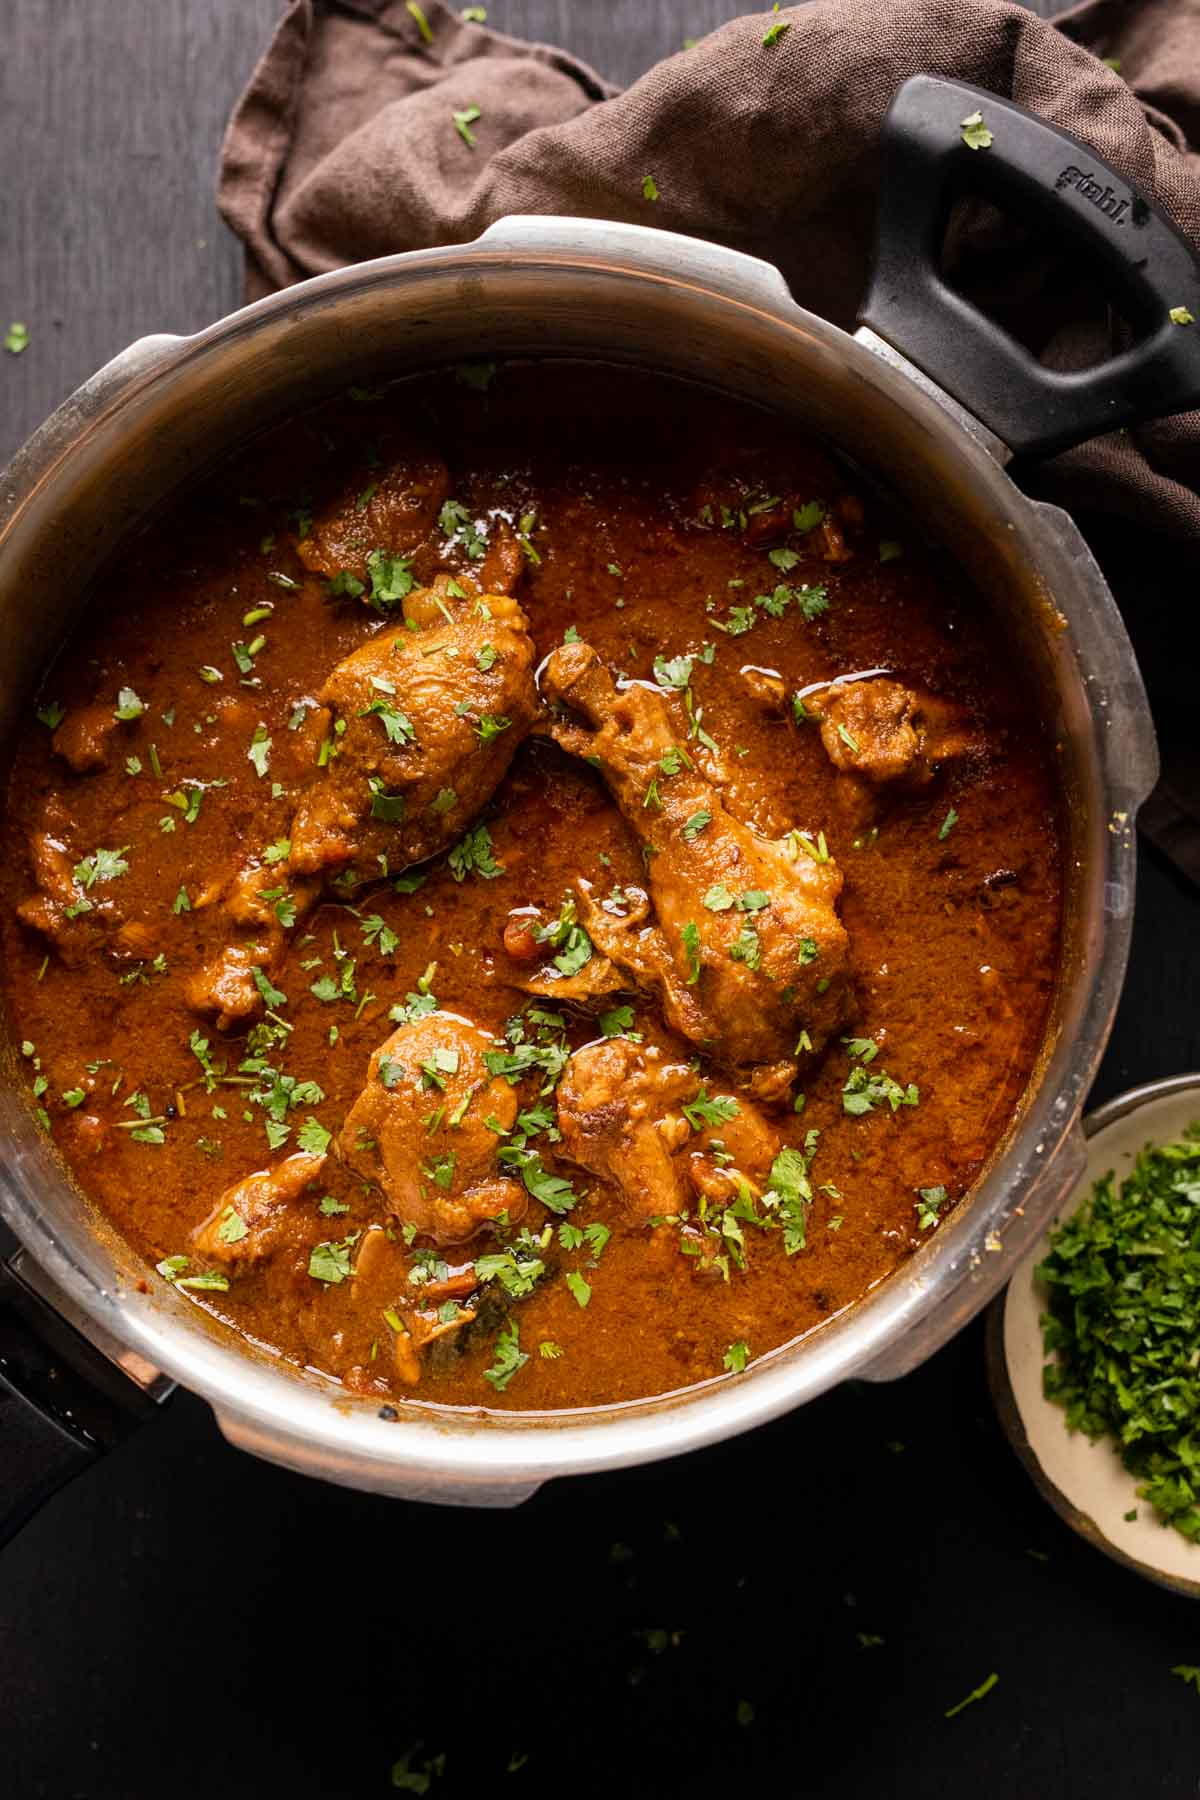 Dhaba style chicken curry served in the pressure cooker it was made in